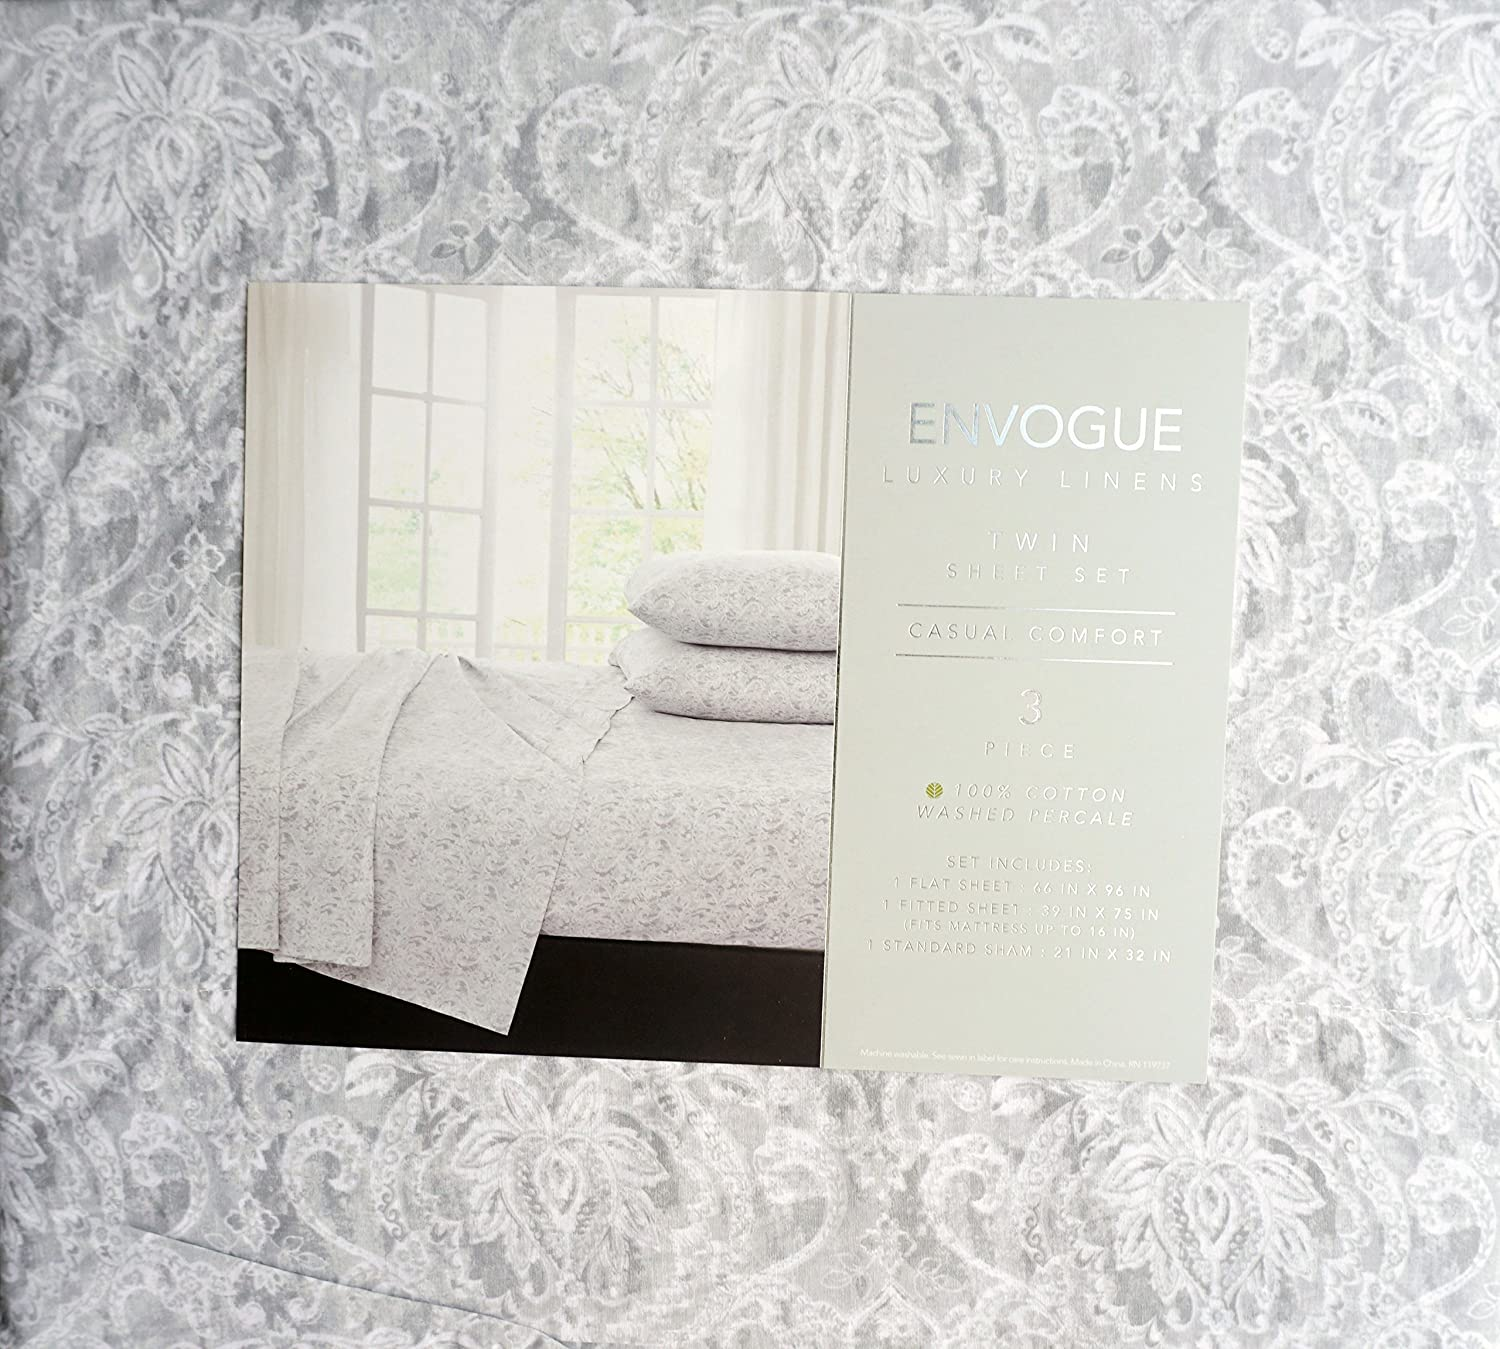 Envogue French Floral Damask Medallions Pattern 3 Piece Twin Size Sheet Set Cotton Percale Gray White Lotus